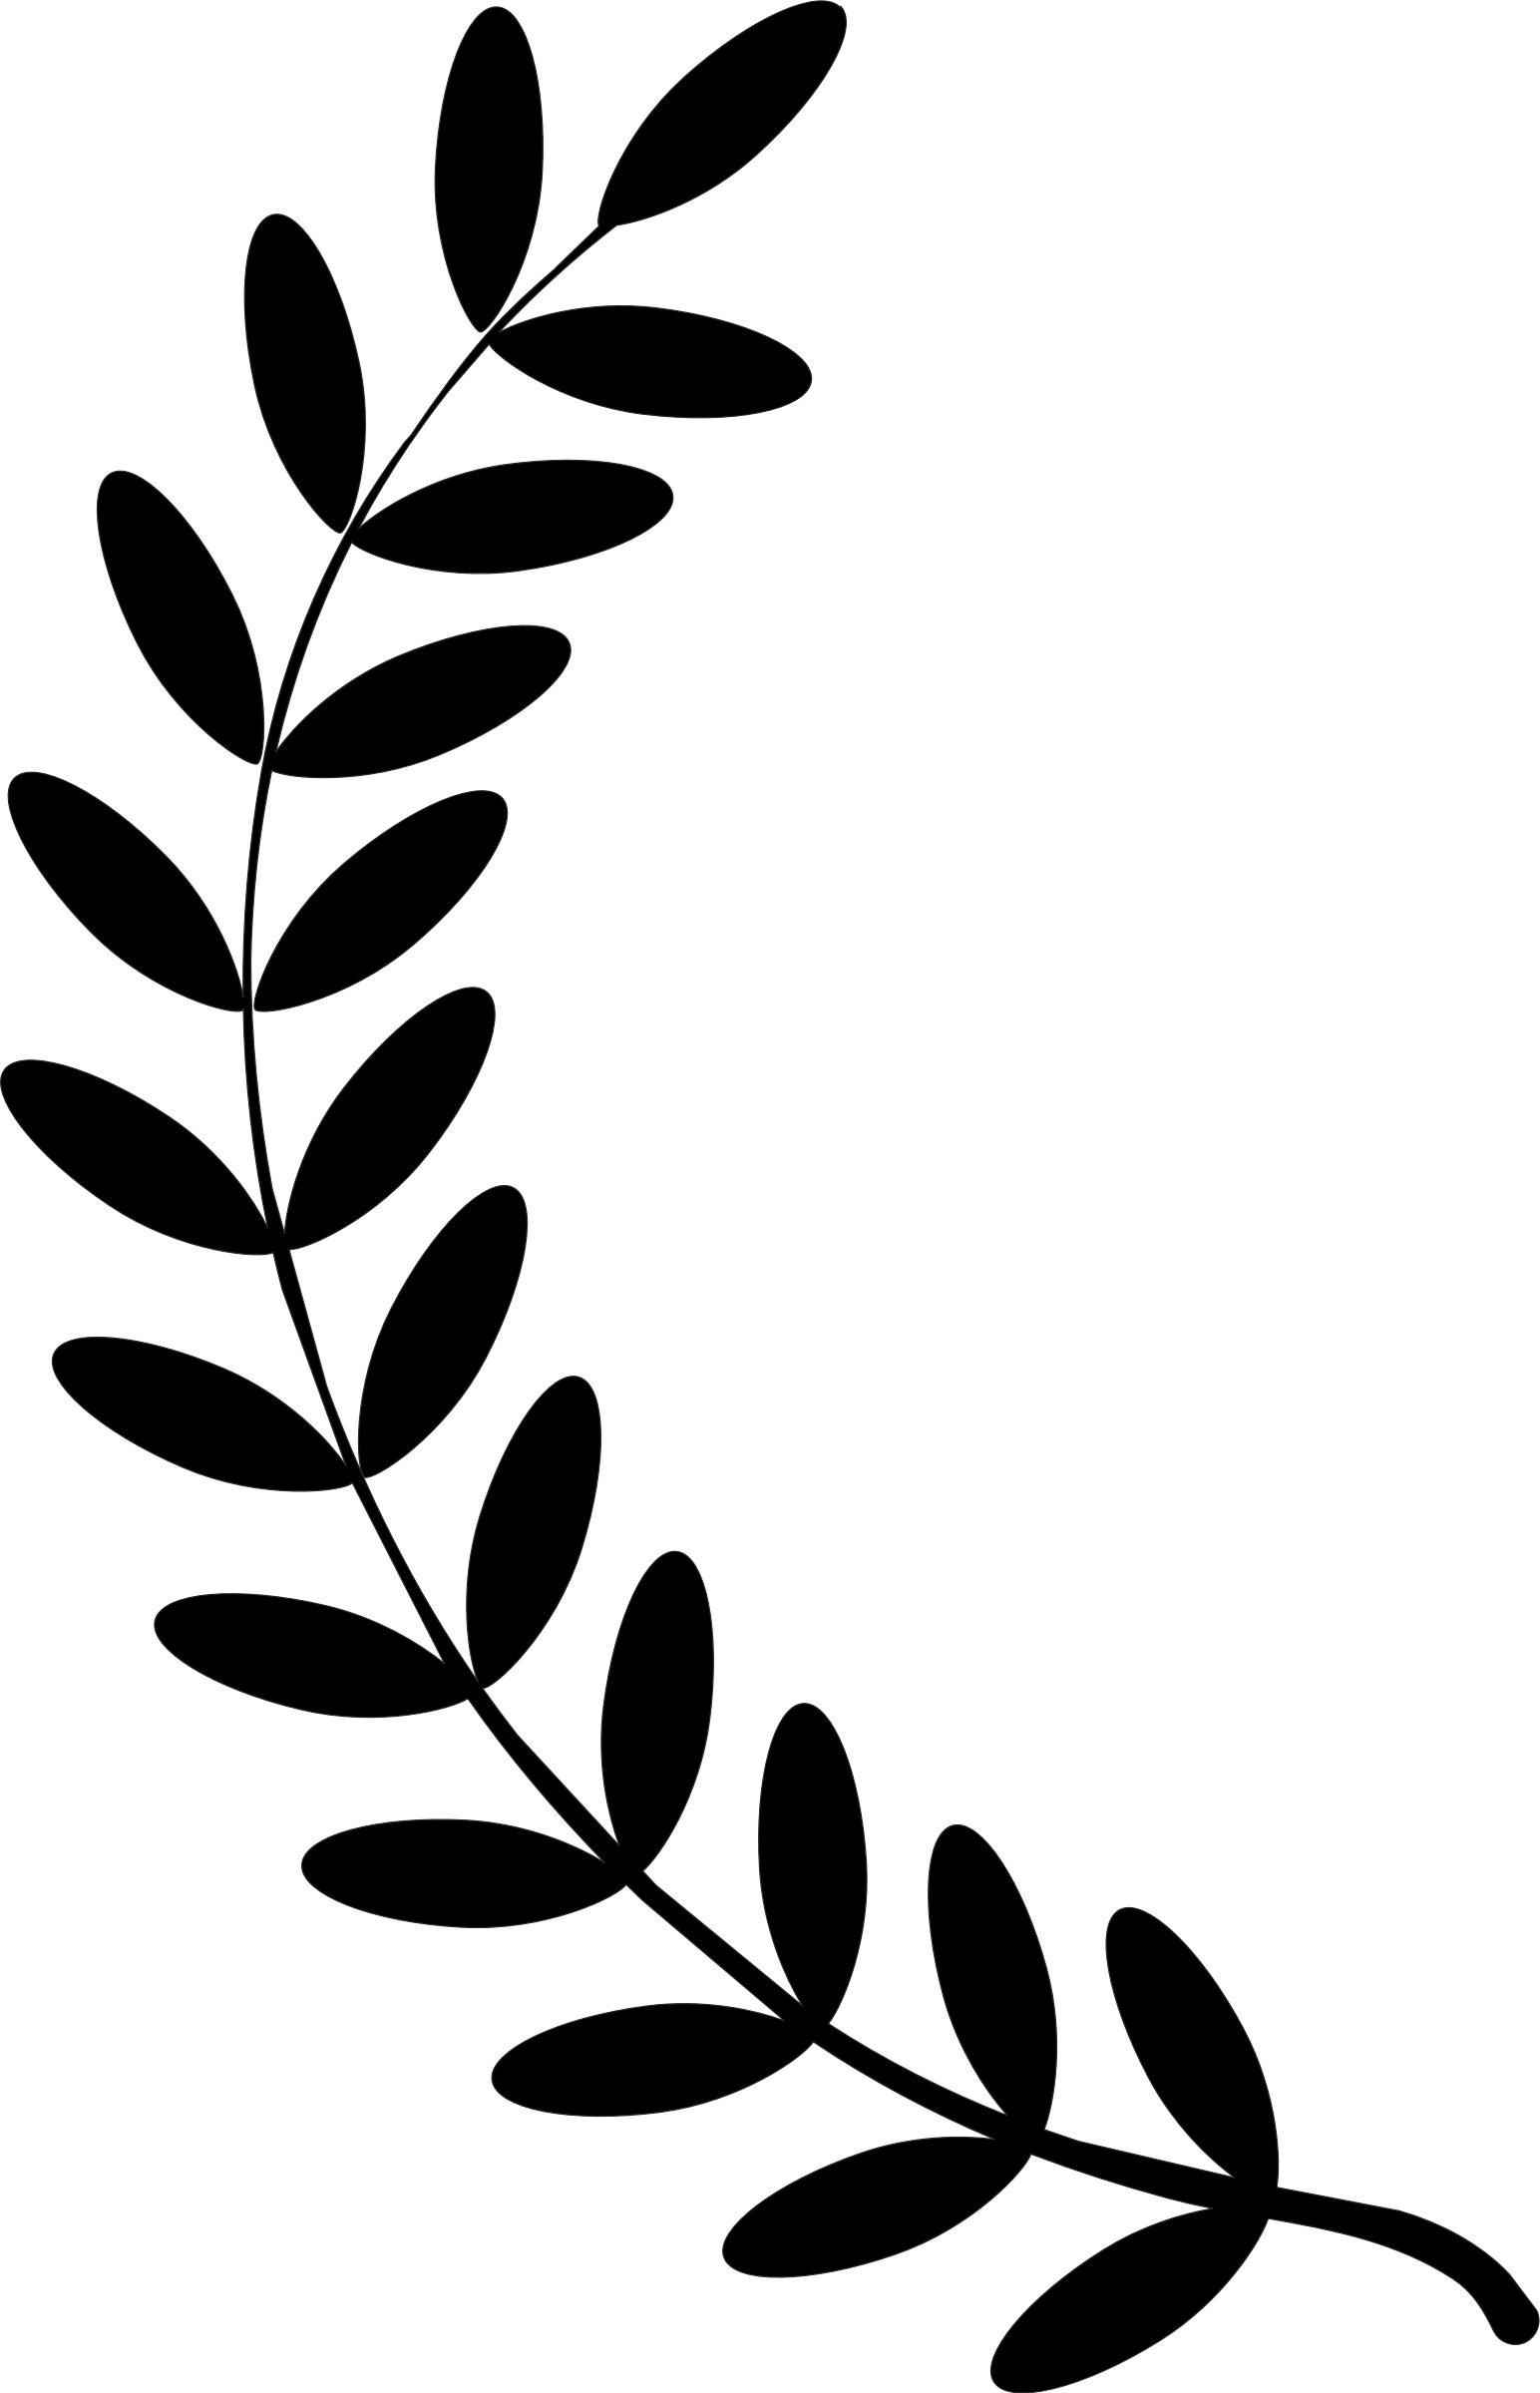 banner free download Floral wreath clipart black and white. Laurel single twig clip